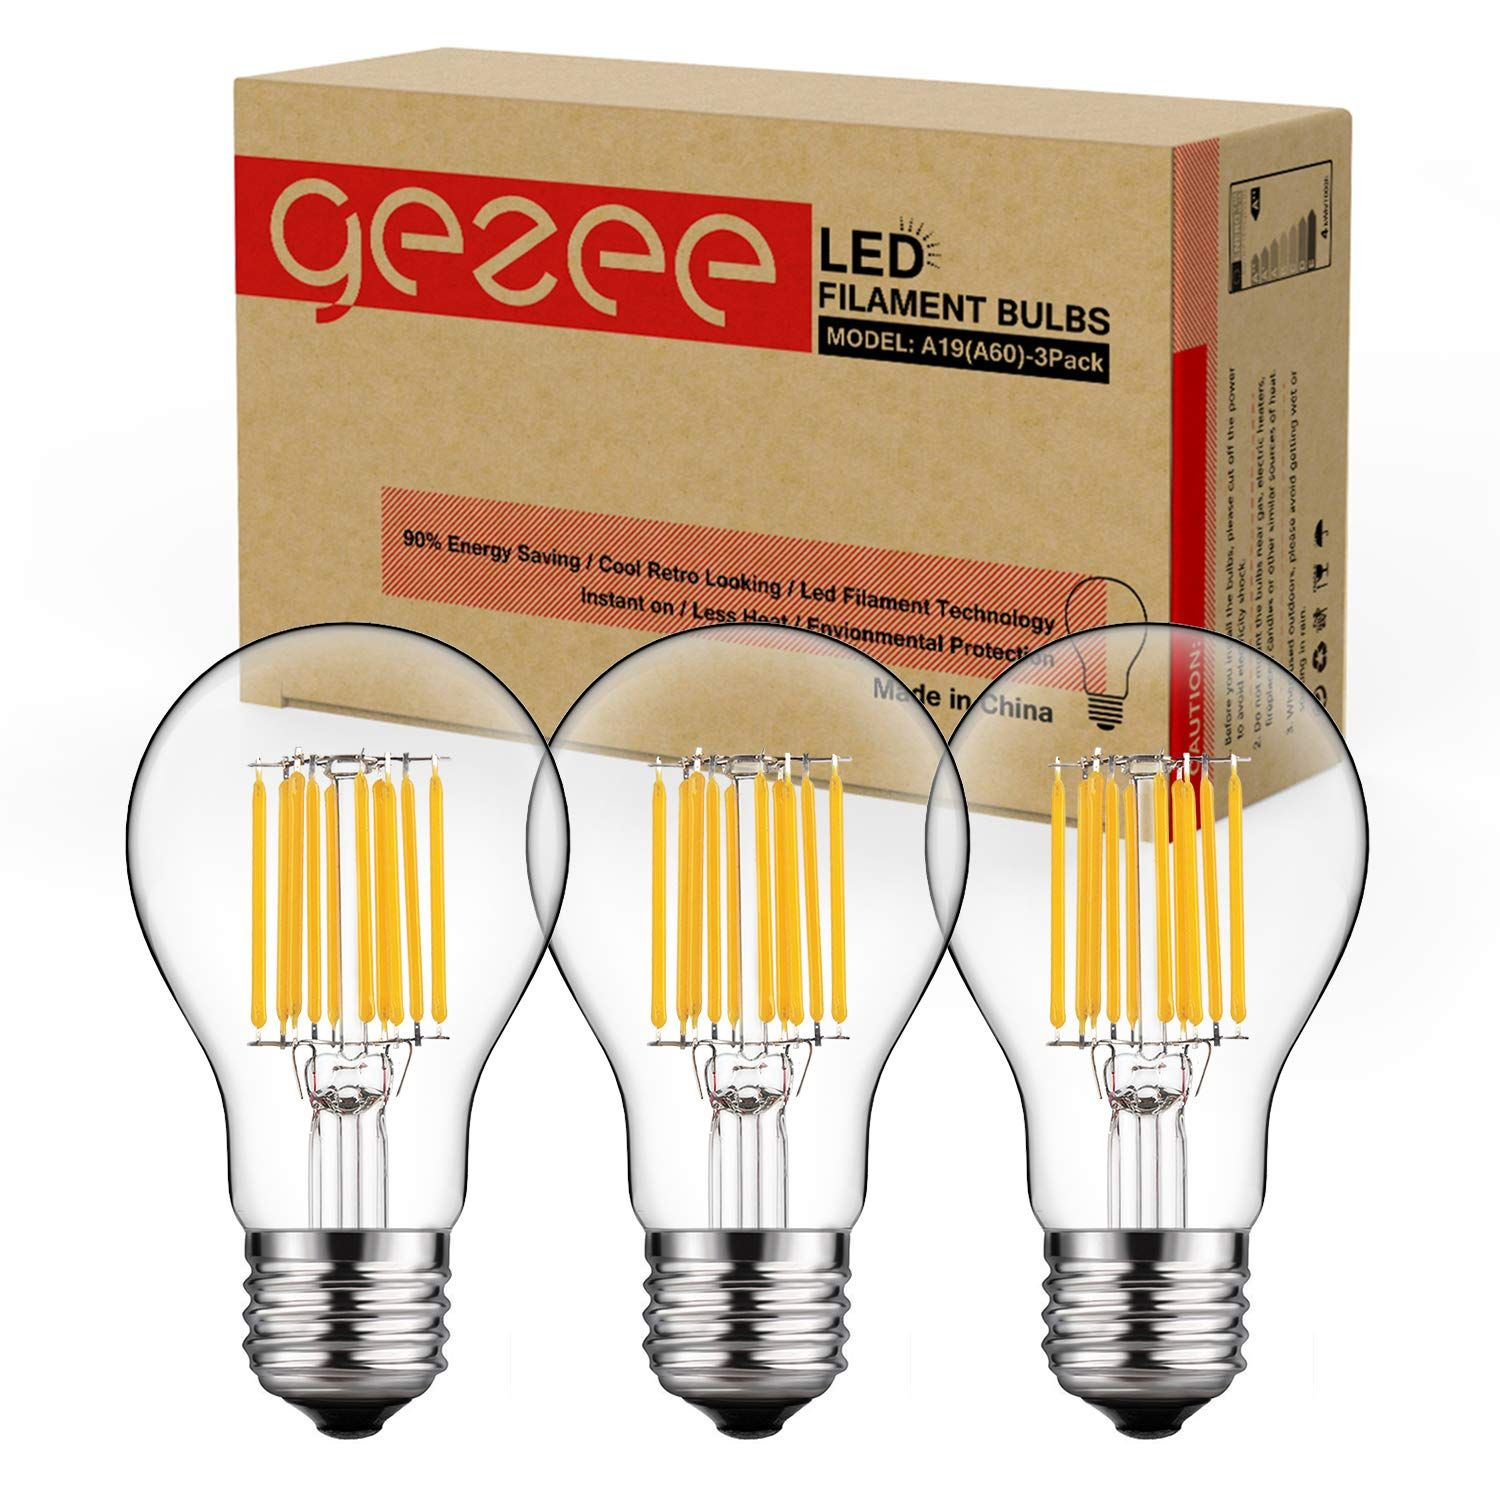 Gezee 10w Edison Style Vintage Led Filament Light Bulb 100w Incandescent Replacement Warm White 27 Filament Bulb Lighting Filament Lighting Vintage Light Bulbs